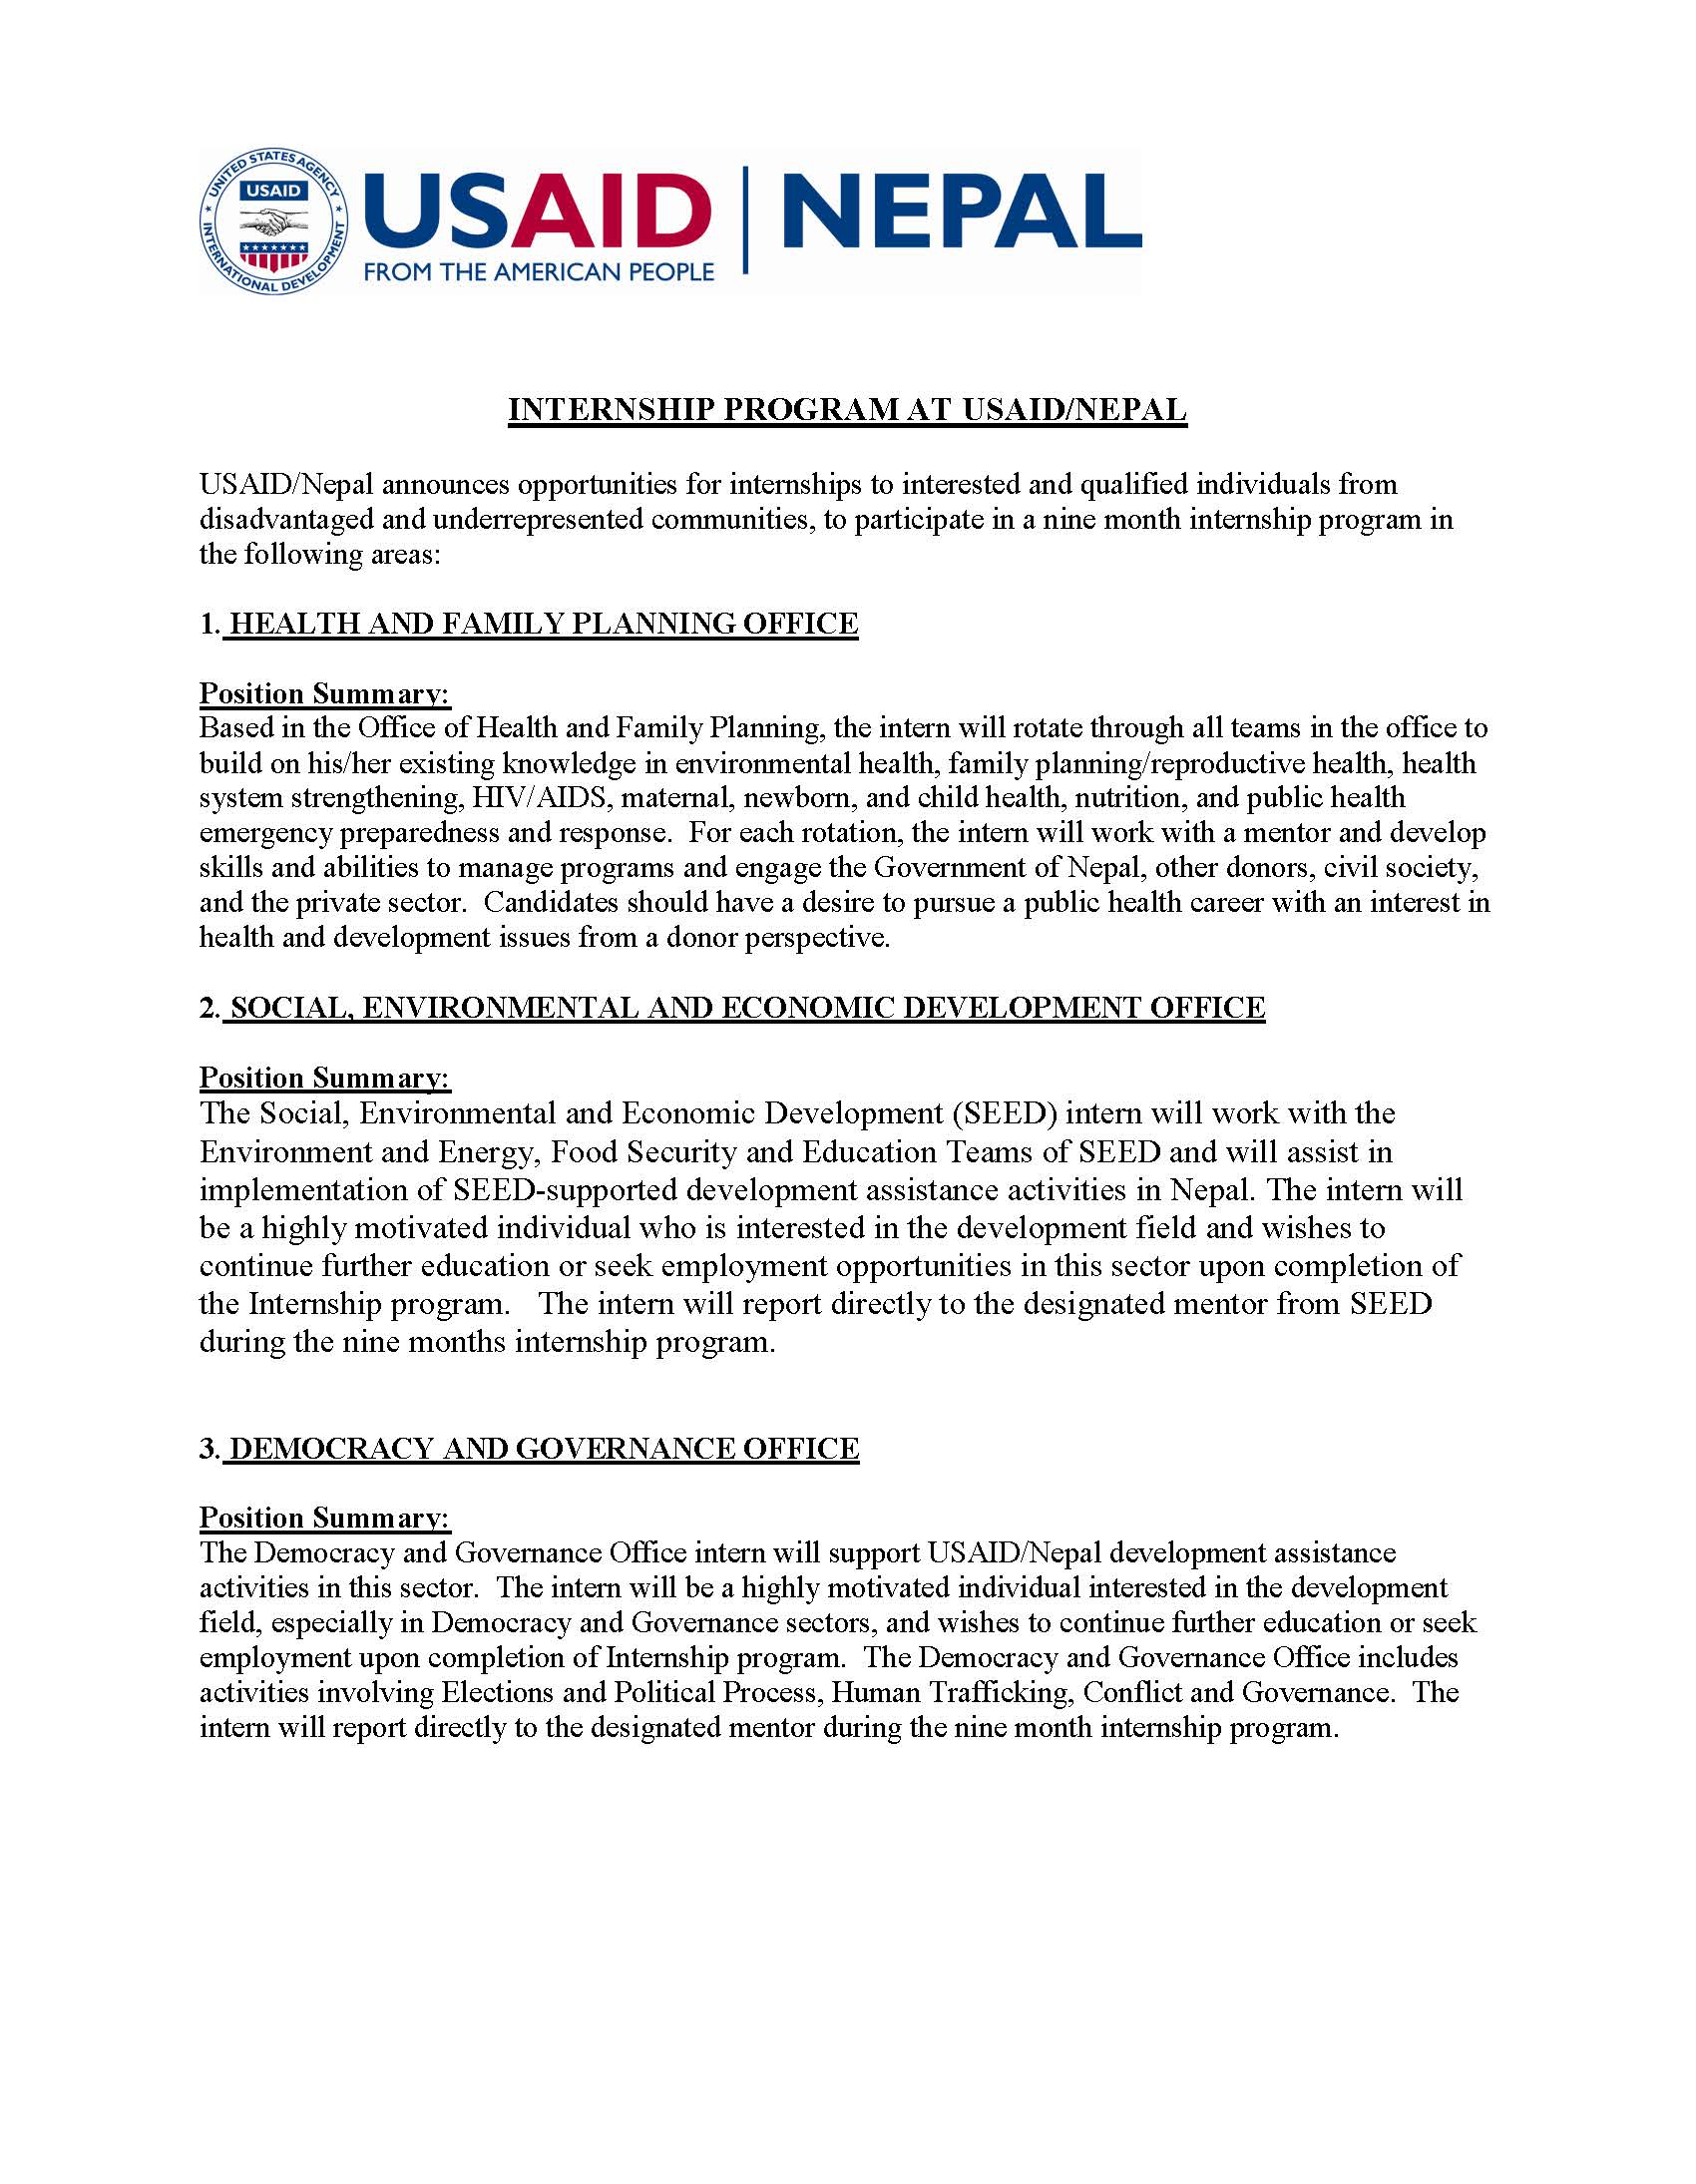 Announcement for Internship Program at USAID Nepal